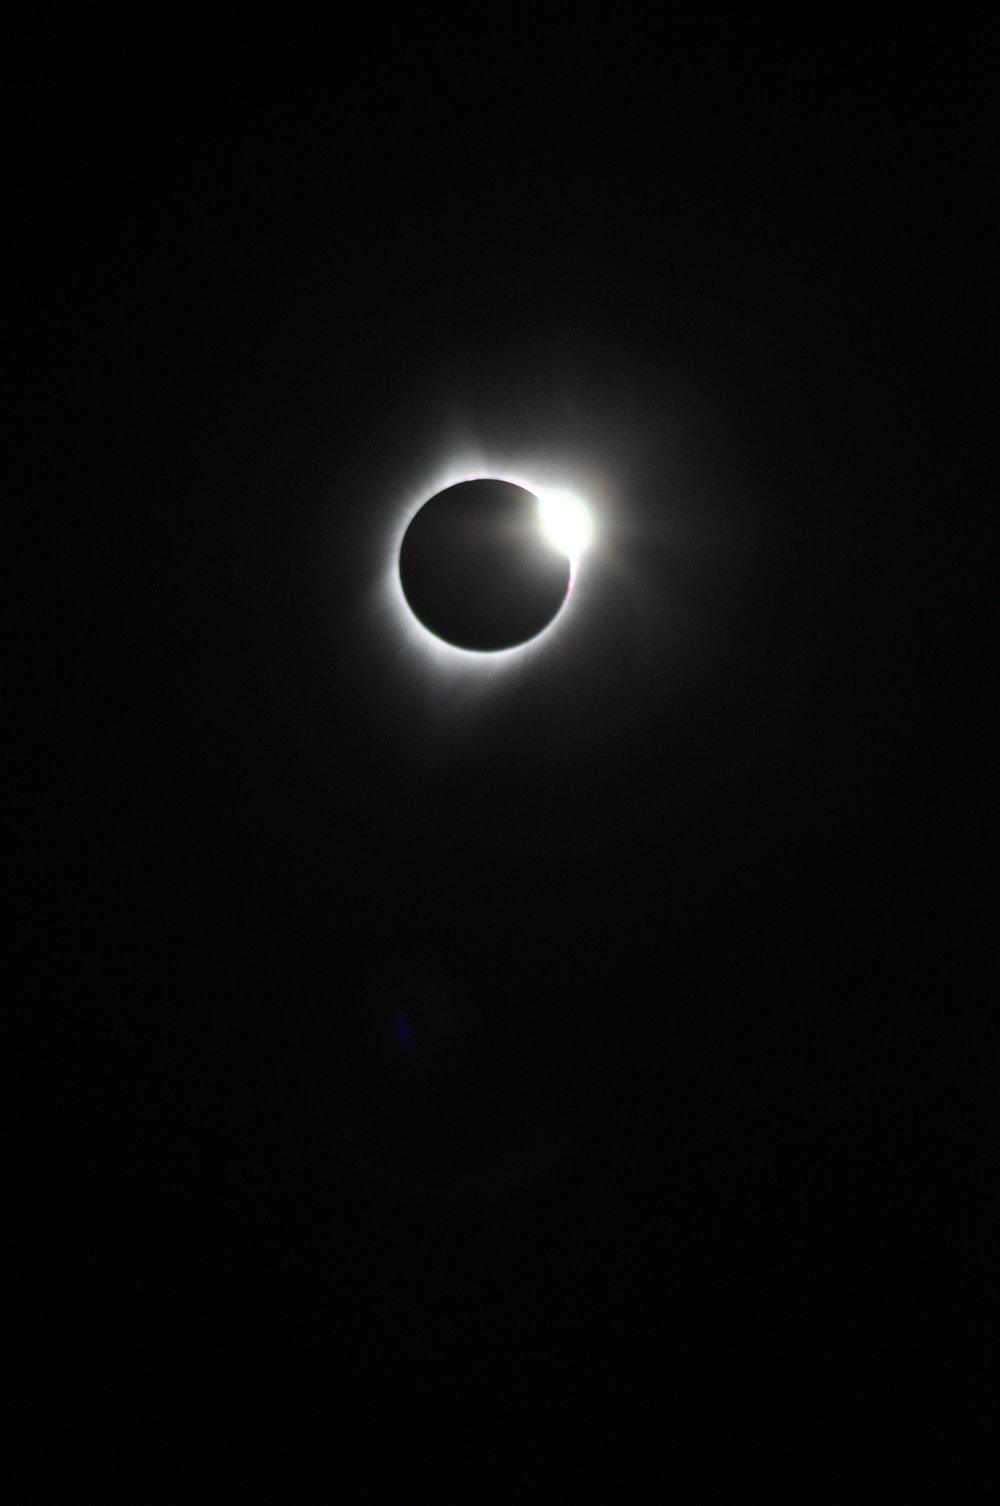 umbraphile - Noun (plural Unbraphiles): One who loves eclipses, often travelling to see them.